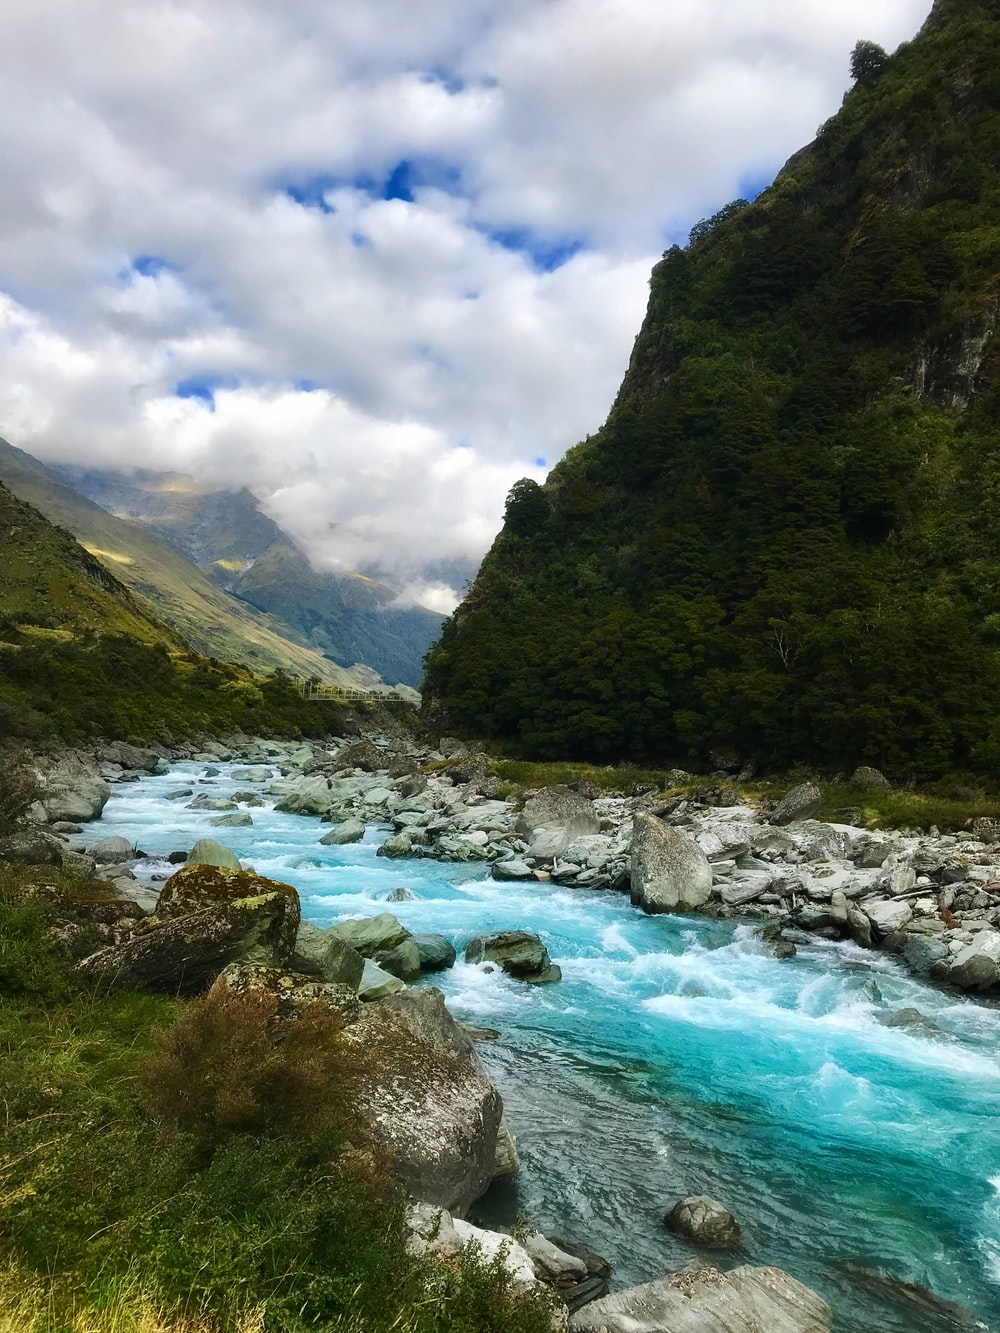 flowing river near green mountain under white clouds